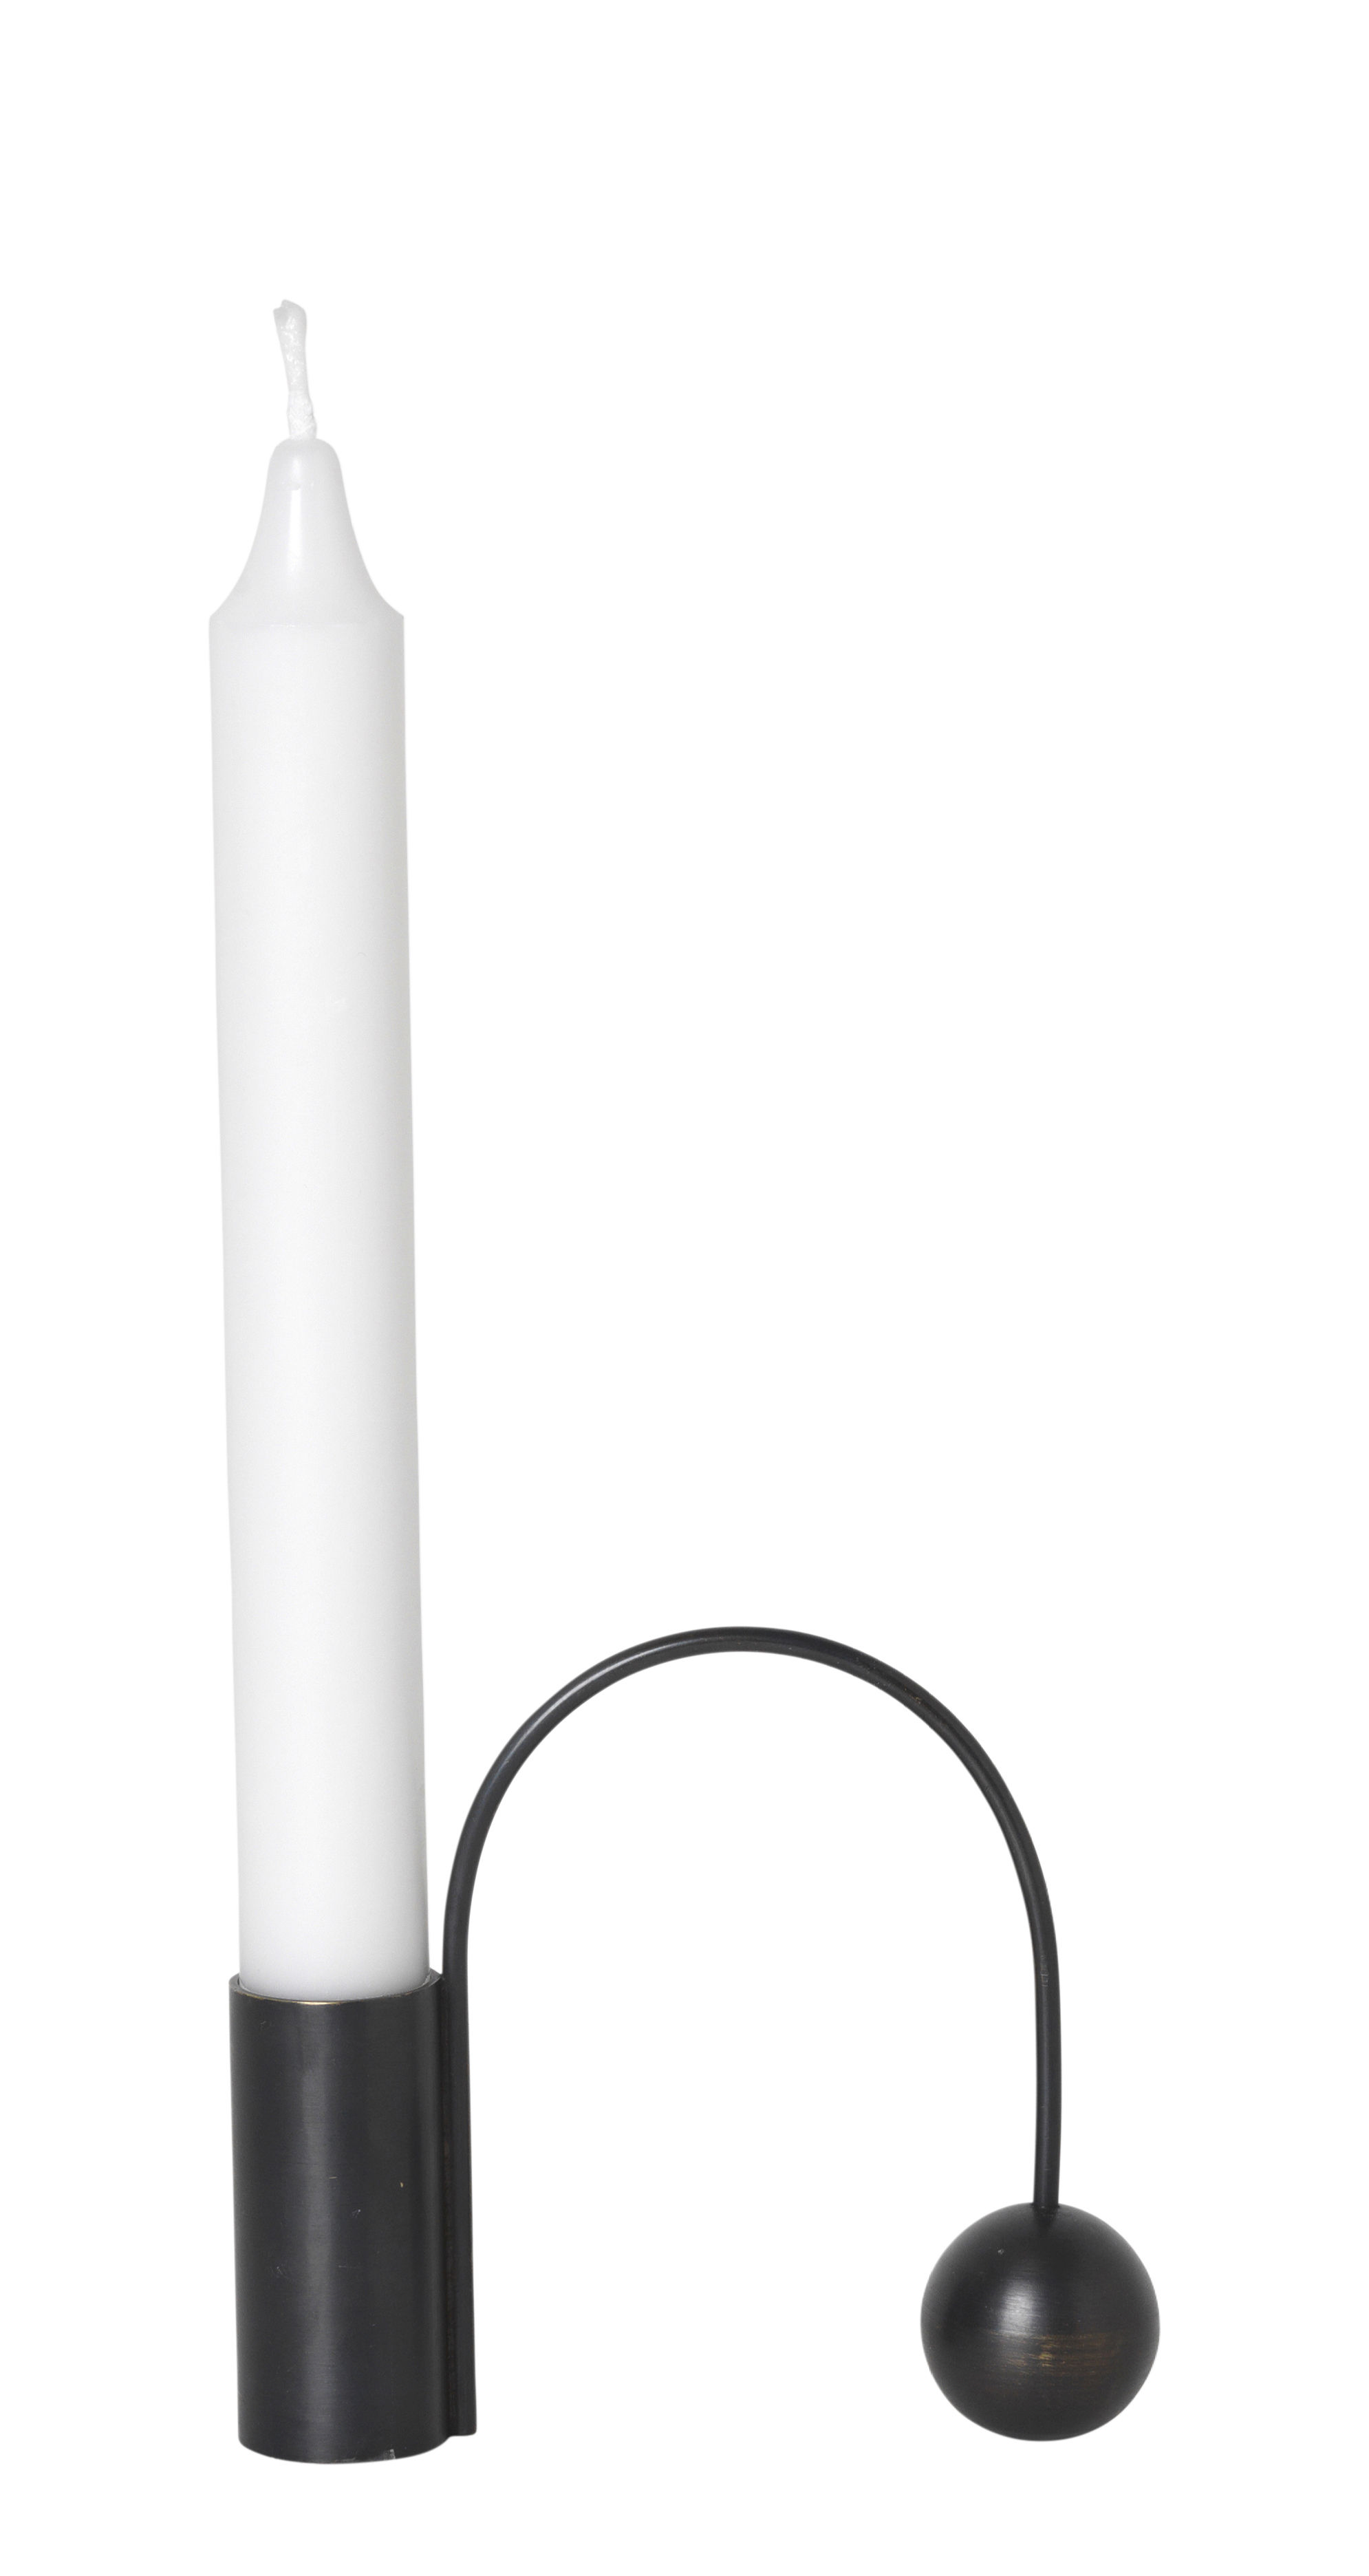 Decoration - Candles & Candle Holders - Balance Candle stick - / Long candle by Ferm Living - Black - Laiton bruni